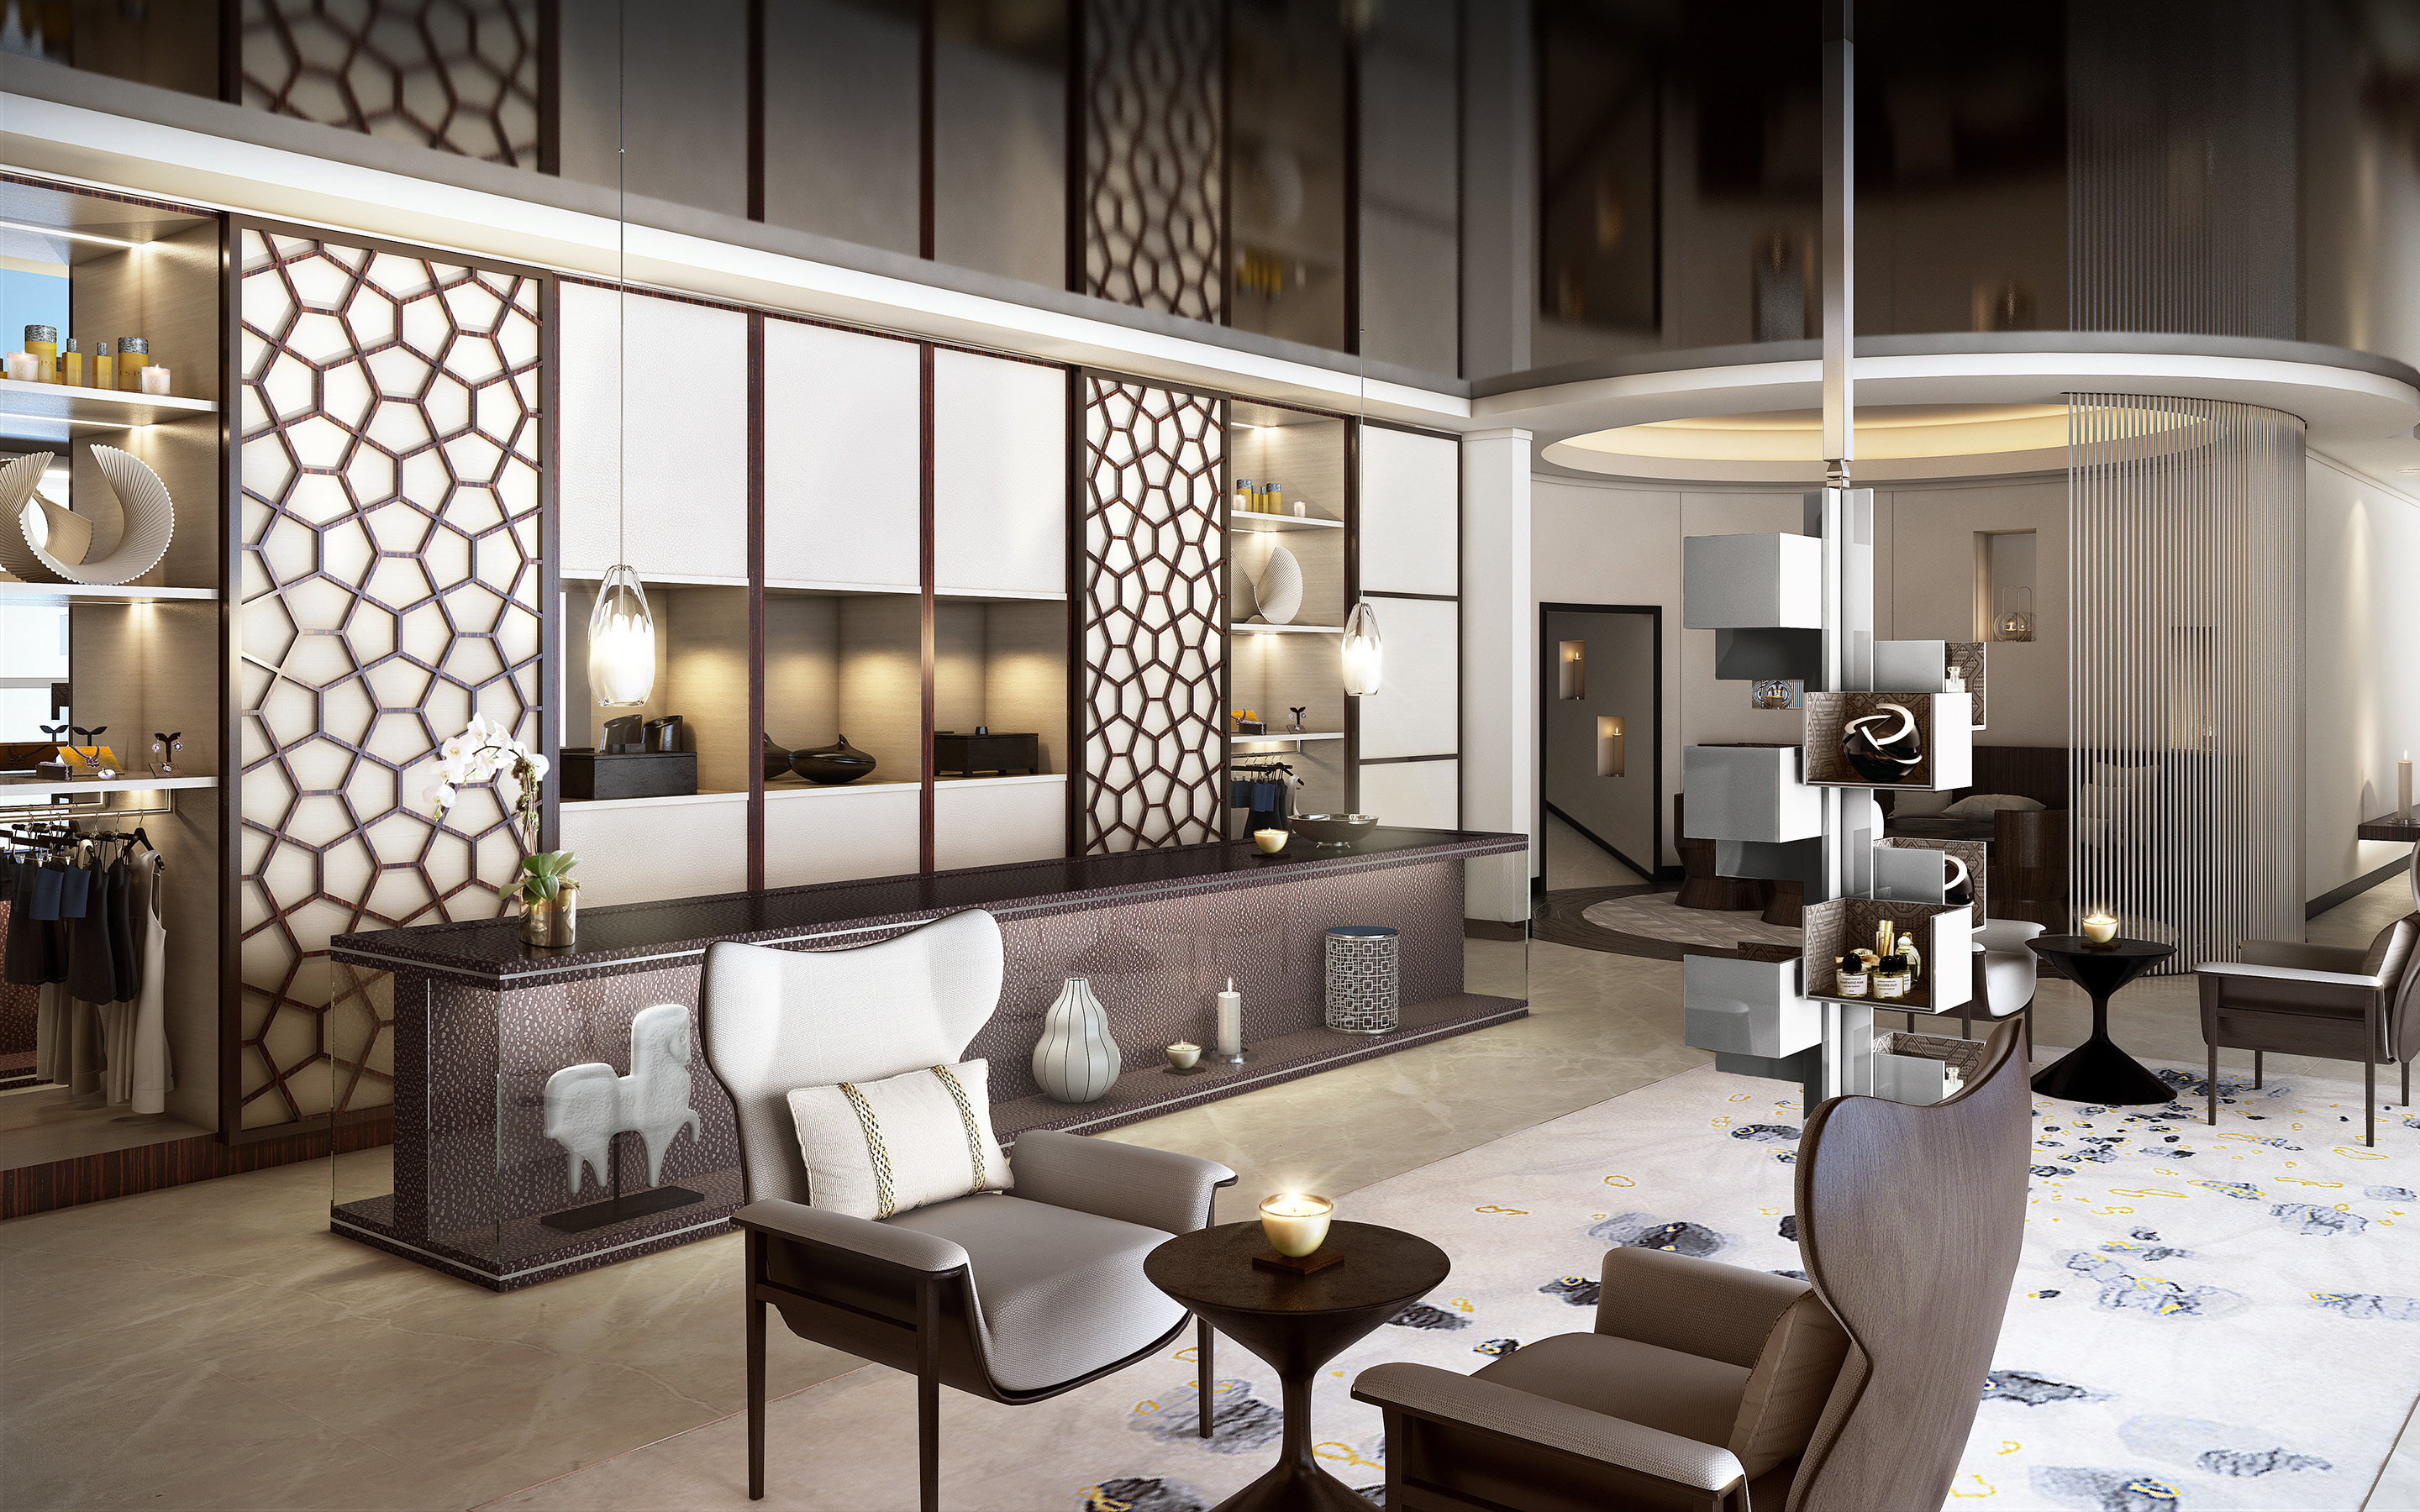 Luxury hotel qatar the gettys group for Hotel interior decor